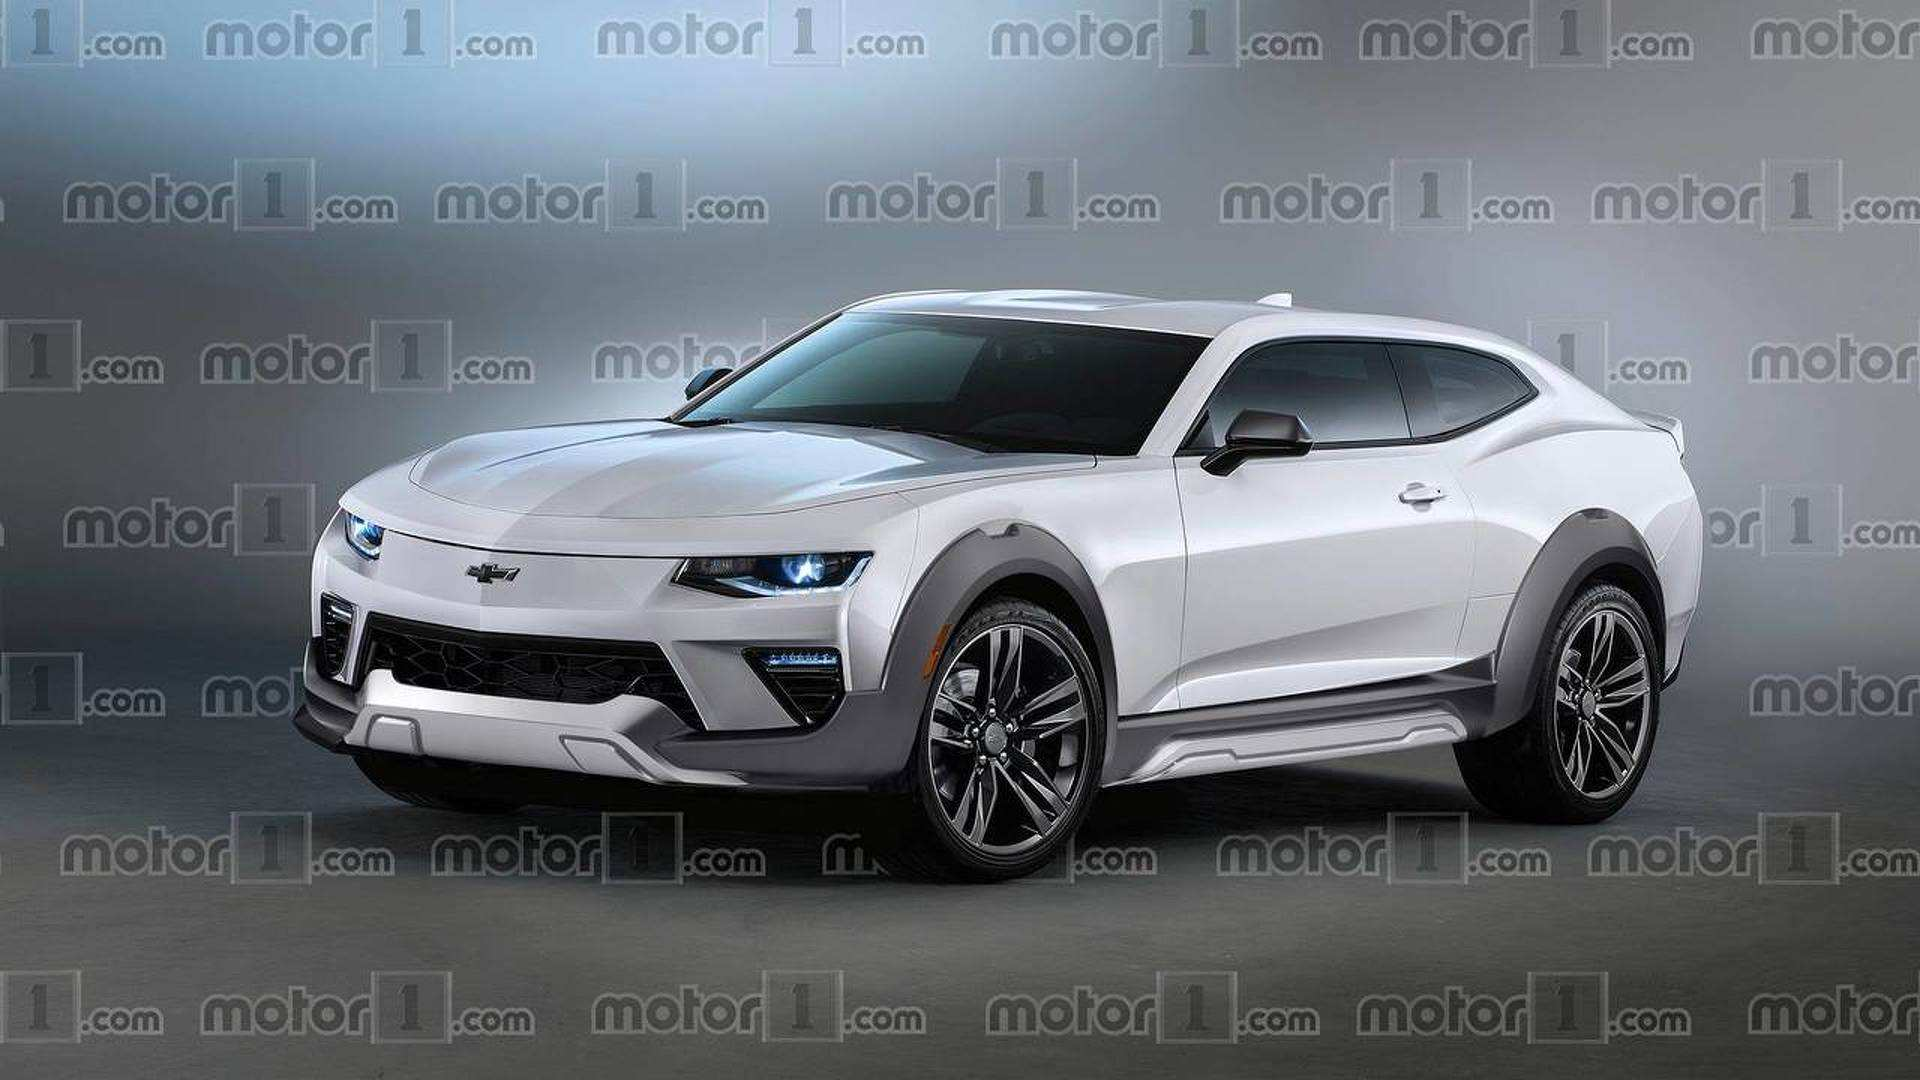 98 Great Chevrolet Vehicles 2020 Performance and New Engine for Chevrolet Vehicles 2020